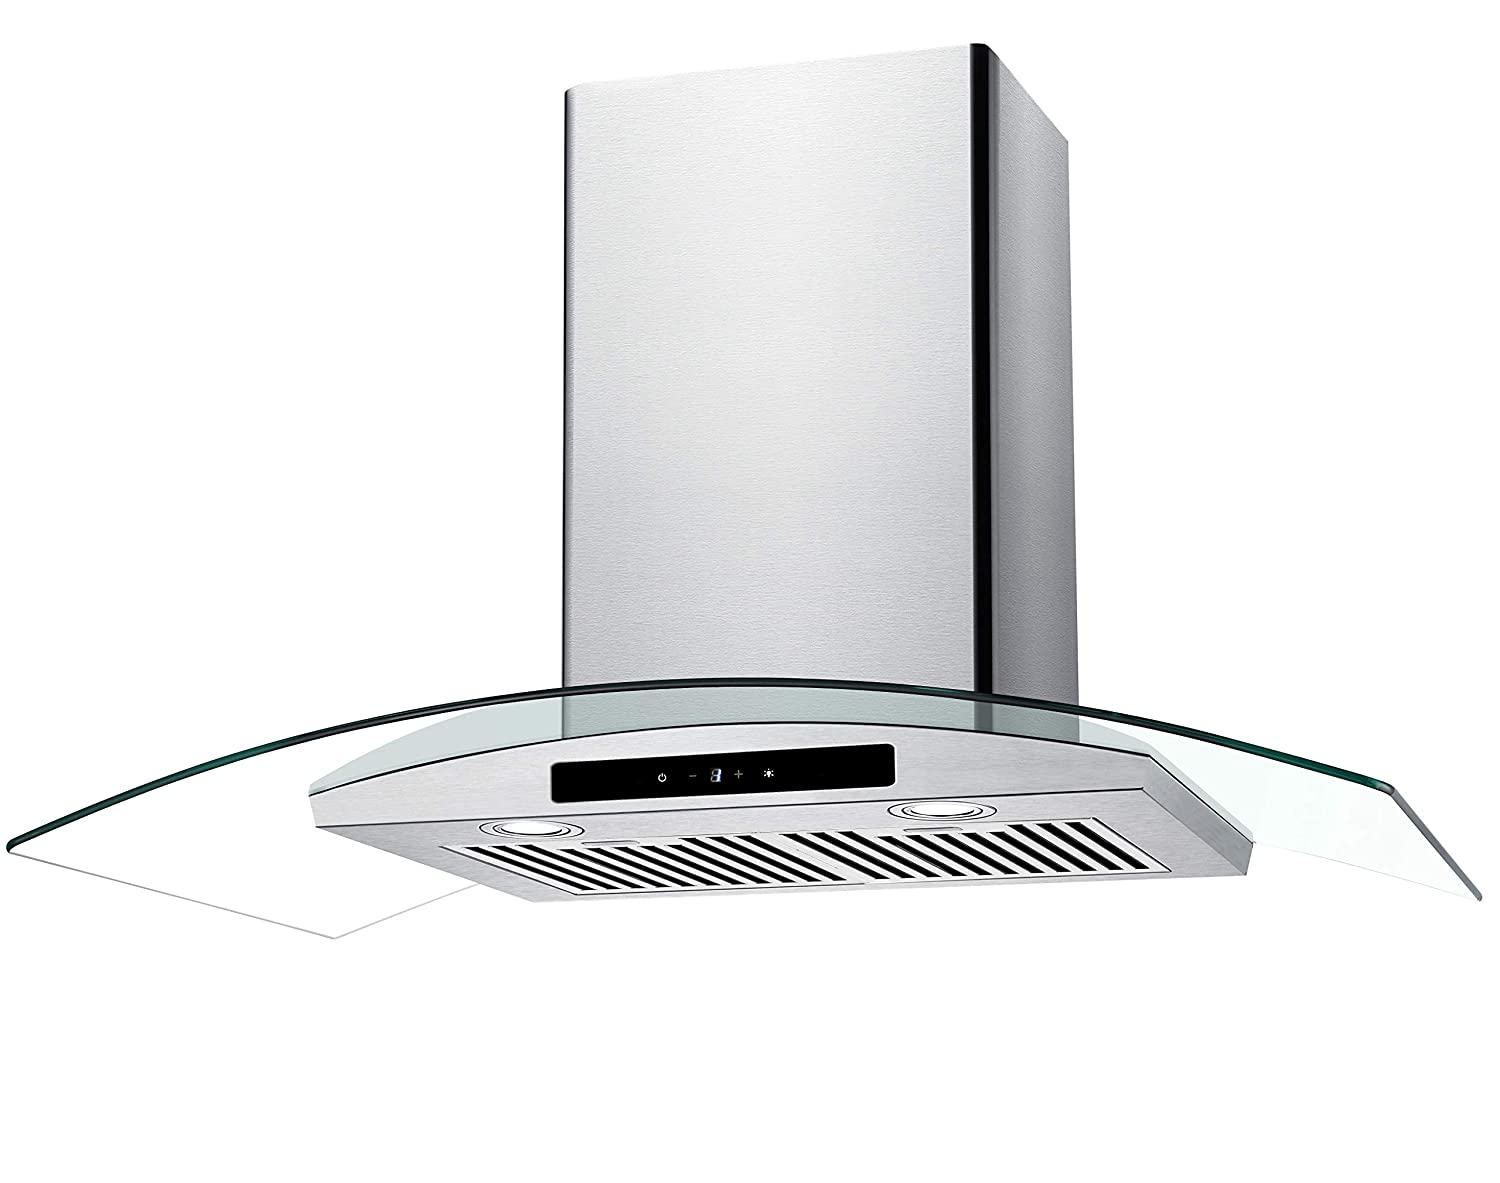 "CIARRA 36"" Convertible Range Hood 450-CFM Ducted/Ductless with LED Lighting,Touch Control Panel,3 Venting Speeds,Reusable Filters,Stainless Steel & Tempered Glass Kitchen Cooking Fan Extractor Hoods"